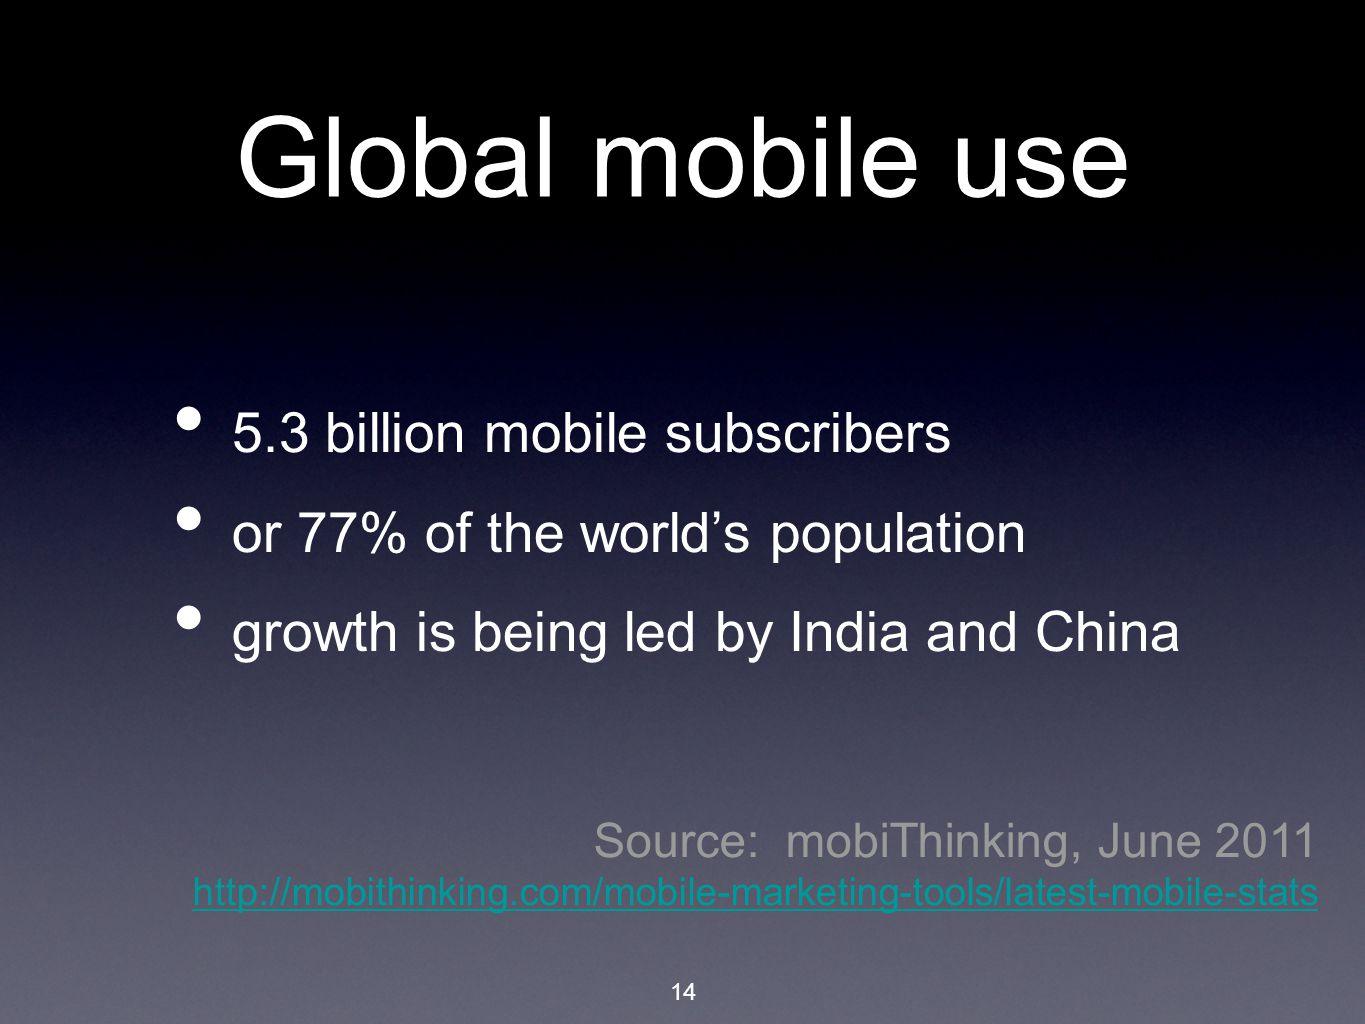 Global mobile use 5.3 billion mobile subscribers or 77% of the world's population growth is being led by India and China Source: mobiThinking, June 2011 http://mobithinking.com/mobile-marketing-tools/latest-mobile-stats http://mobithinking.com/mobile-marketing-tools/latest-mobile-stats 14